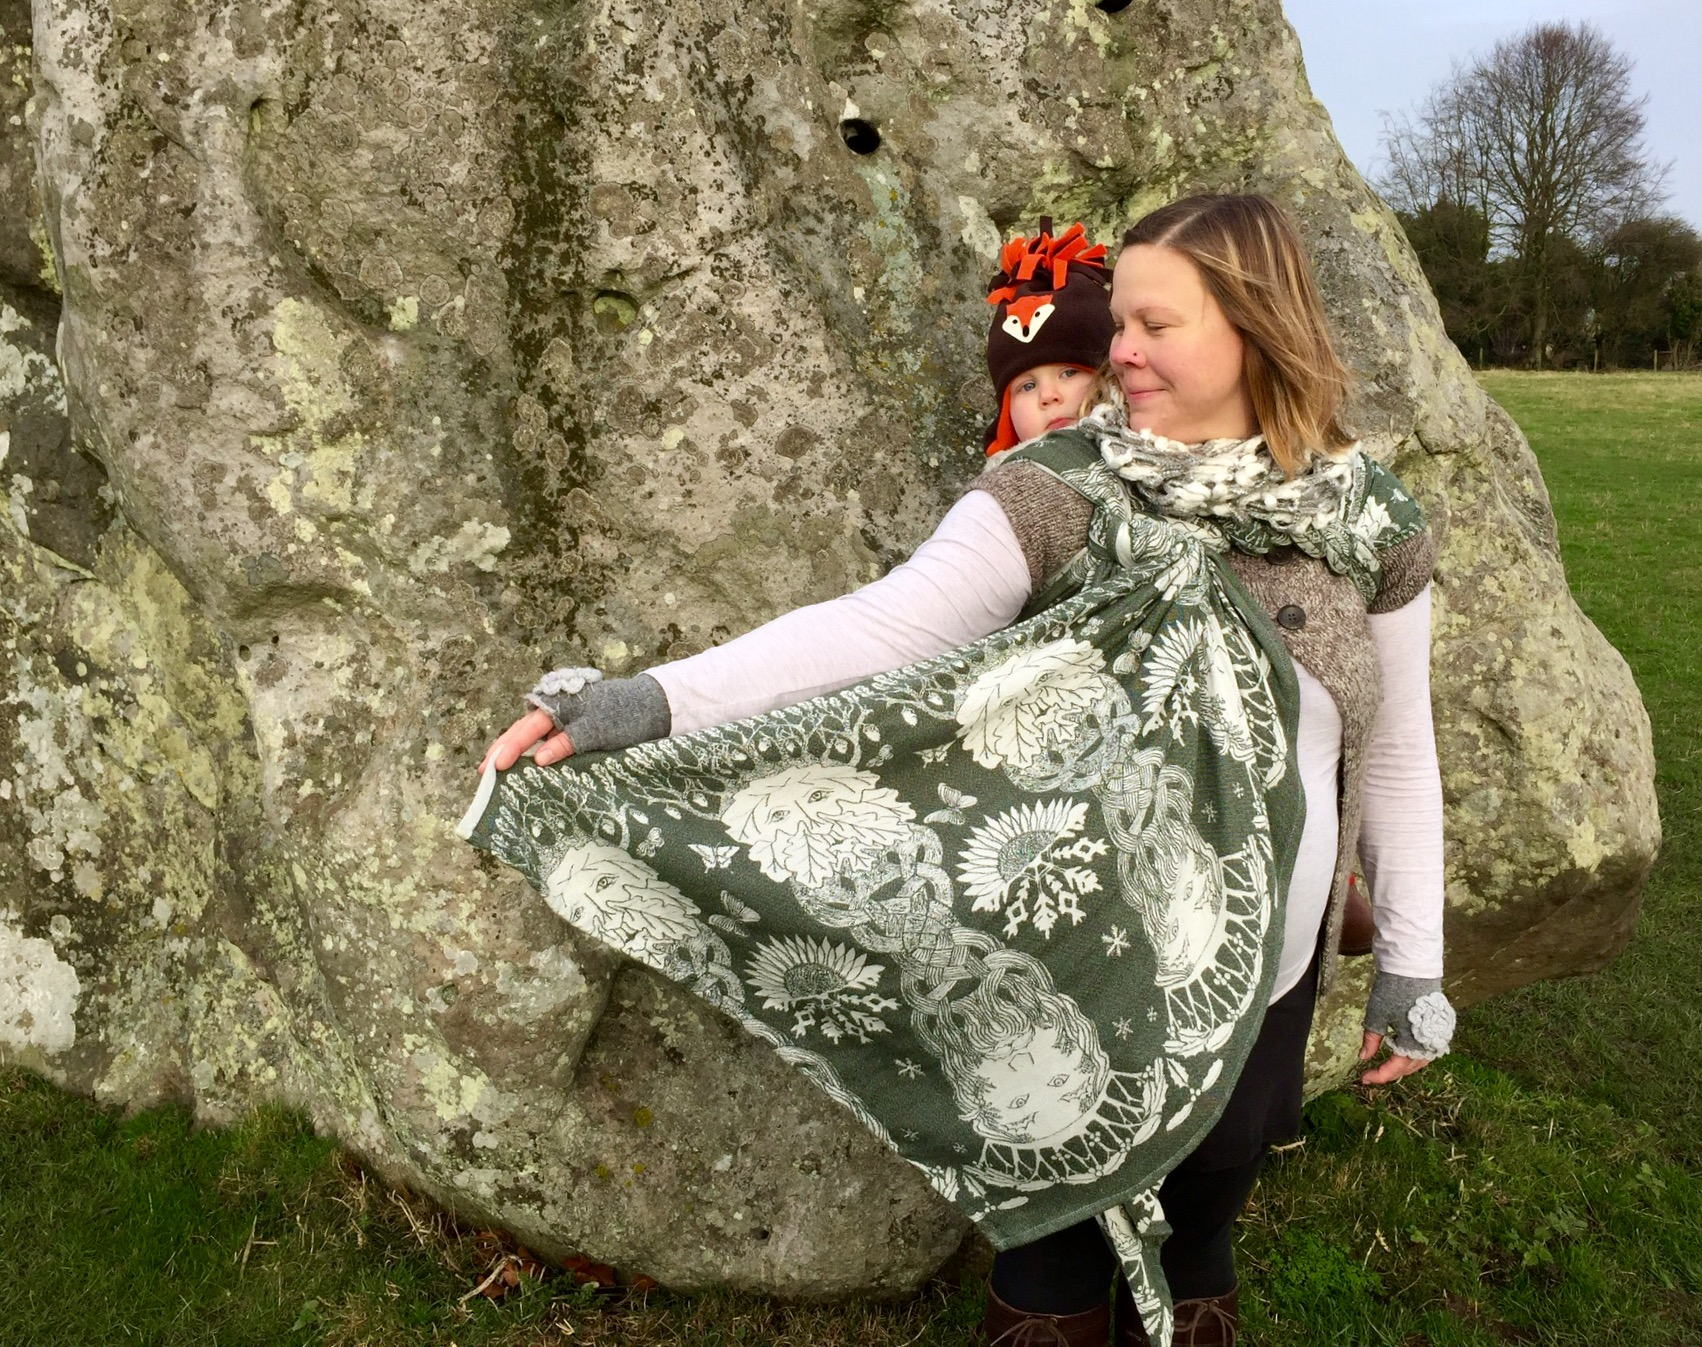 Winter Solstice at Avebury with Baie's Oak & Holly King